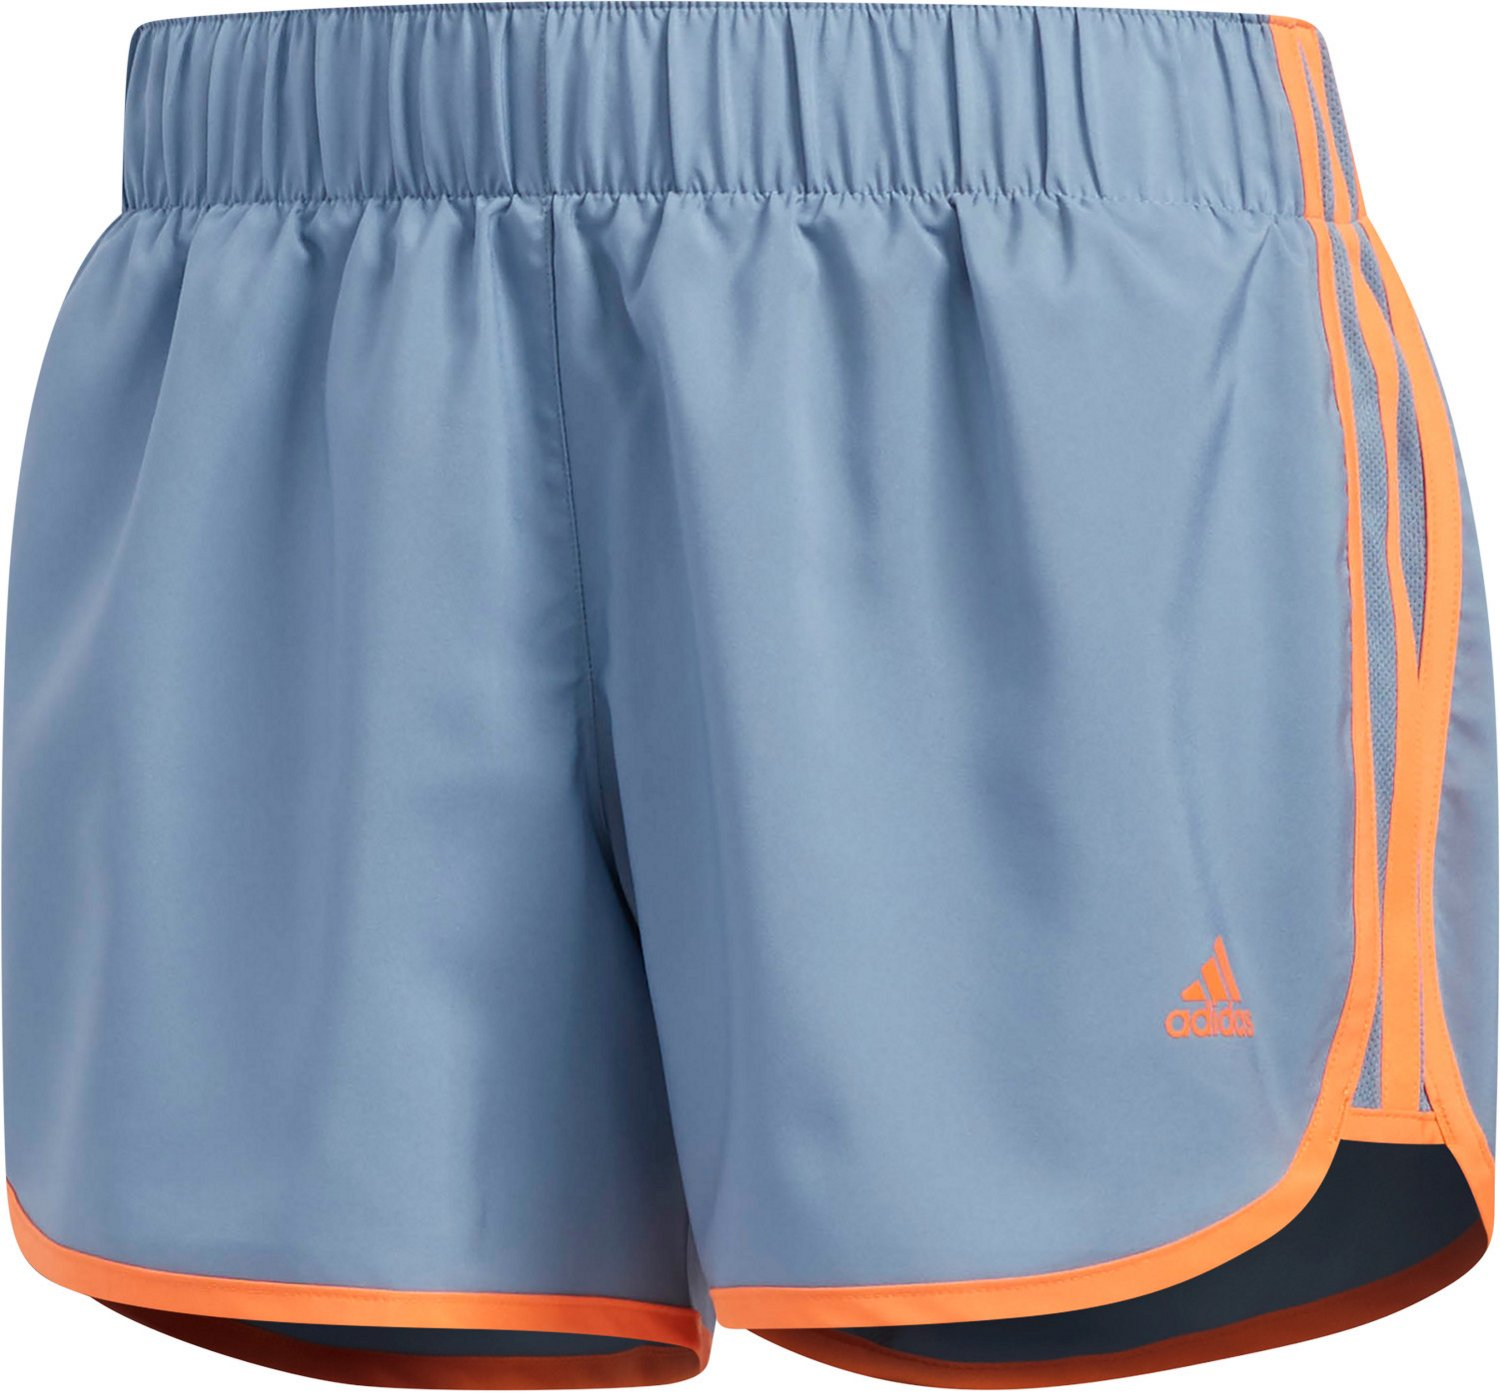 208fd0bca147 Display product reviews for adidas Women s M10 Woven 3-Stripes Short